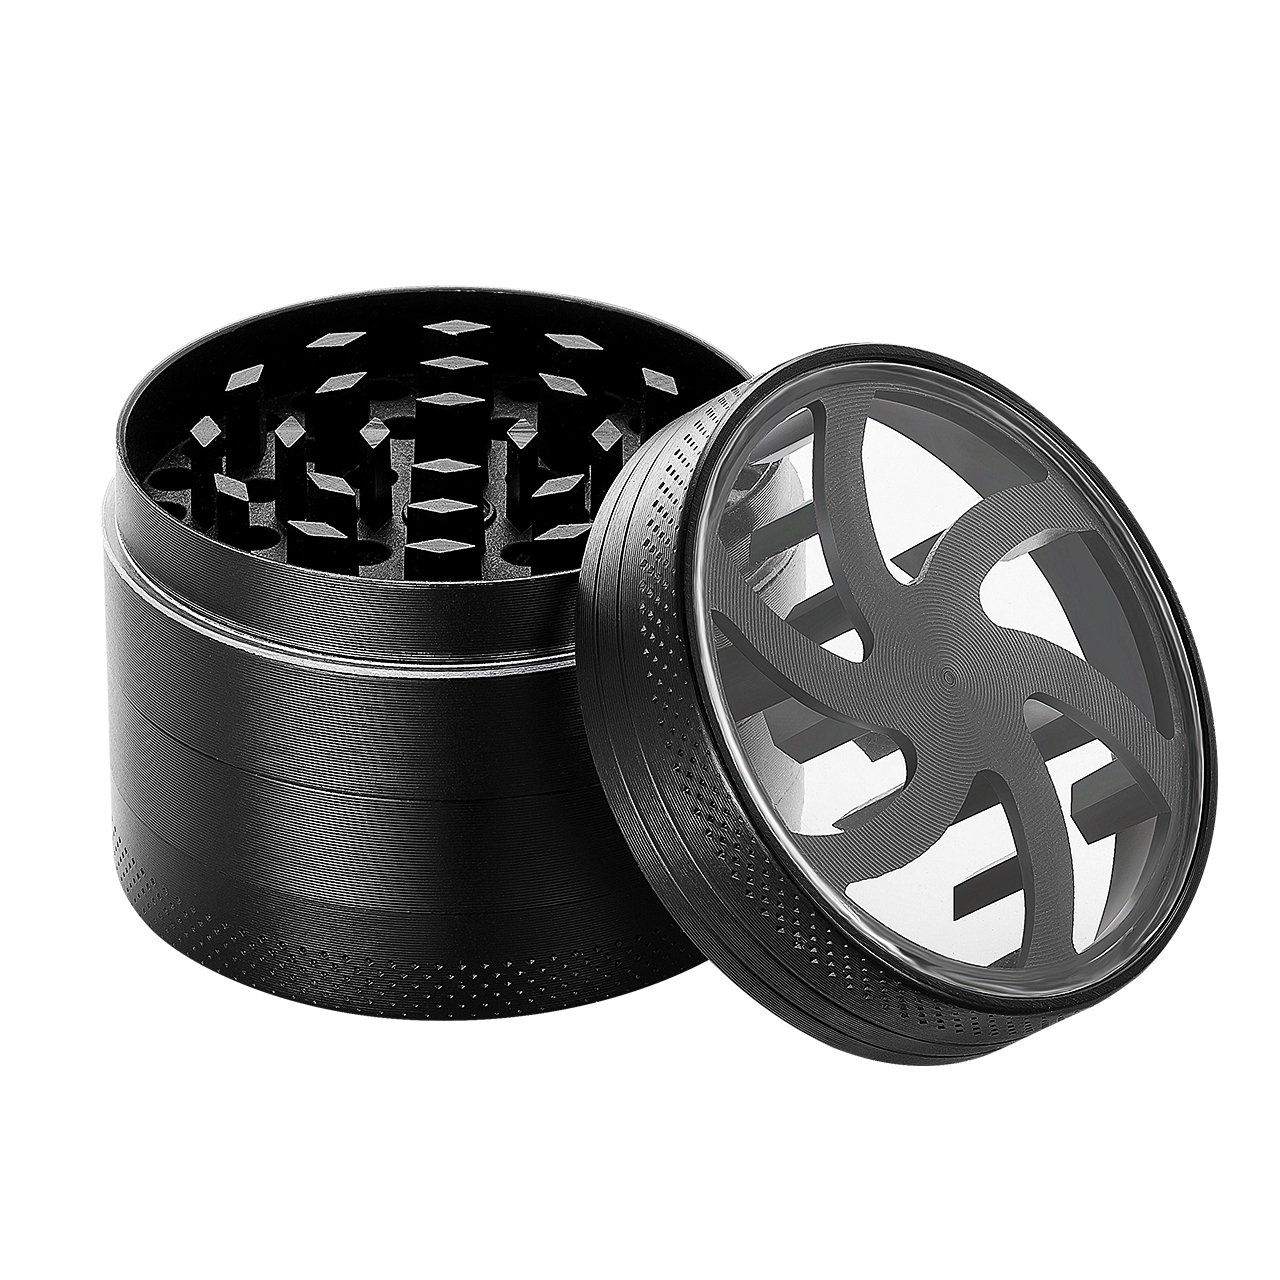 Herb Grinder, TopElek 2-inch Herb Grinder with a Scraper, 4-Layer 3-Chamber Design, Hollow-Out Style Lid, Powerful Magnetic Lid, Razor-Sharp Teeth, Zinc Alloy Material Made, Portable, Black